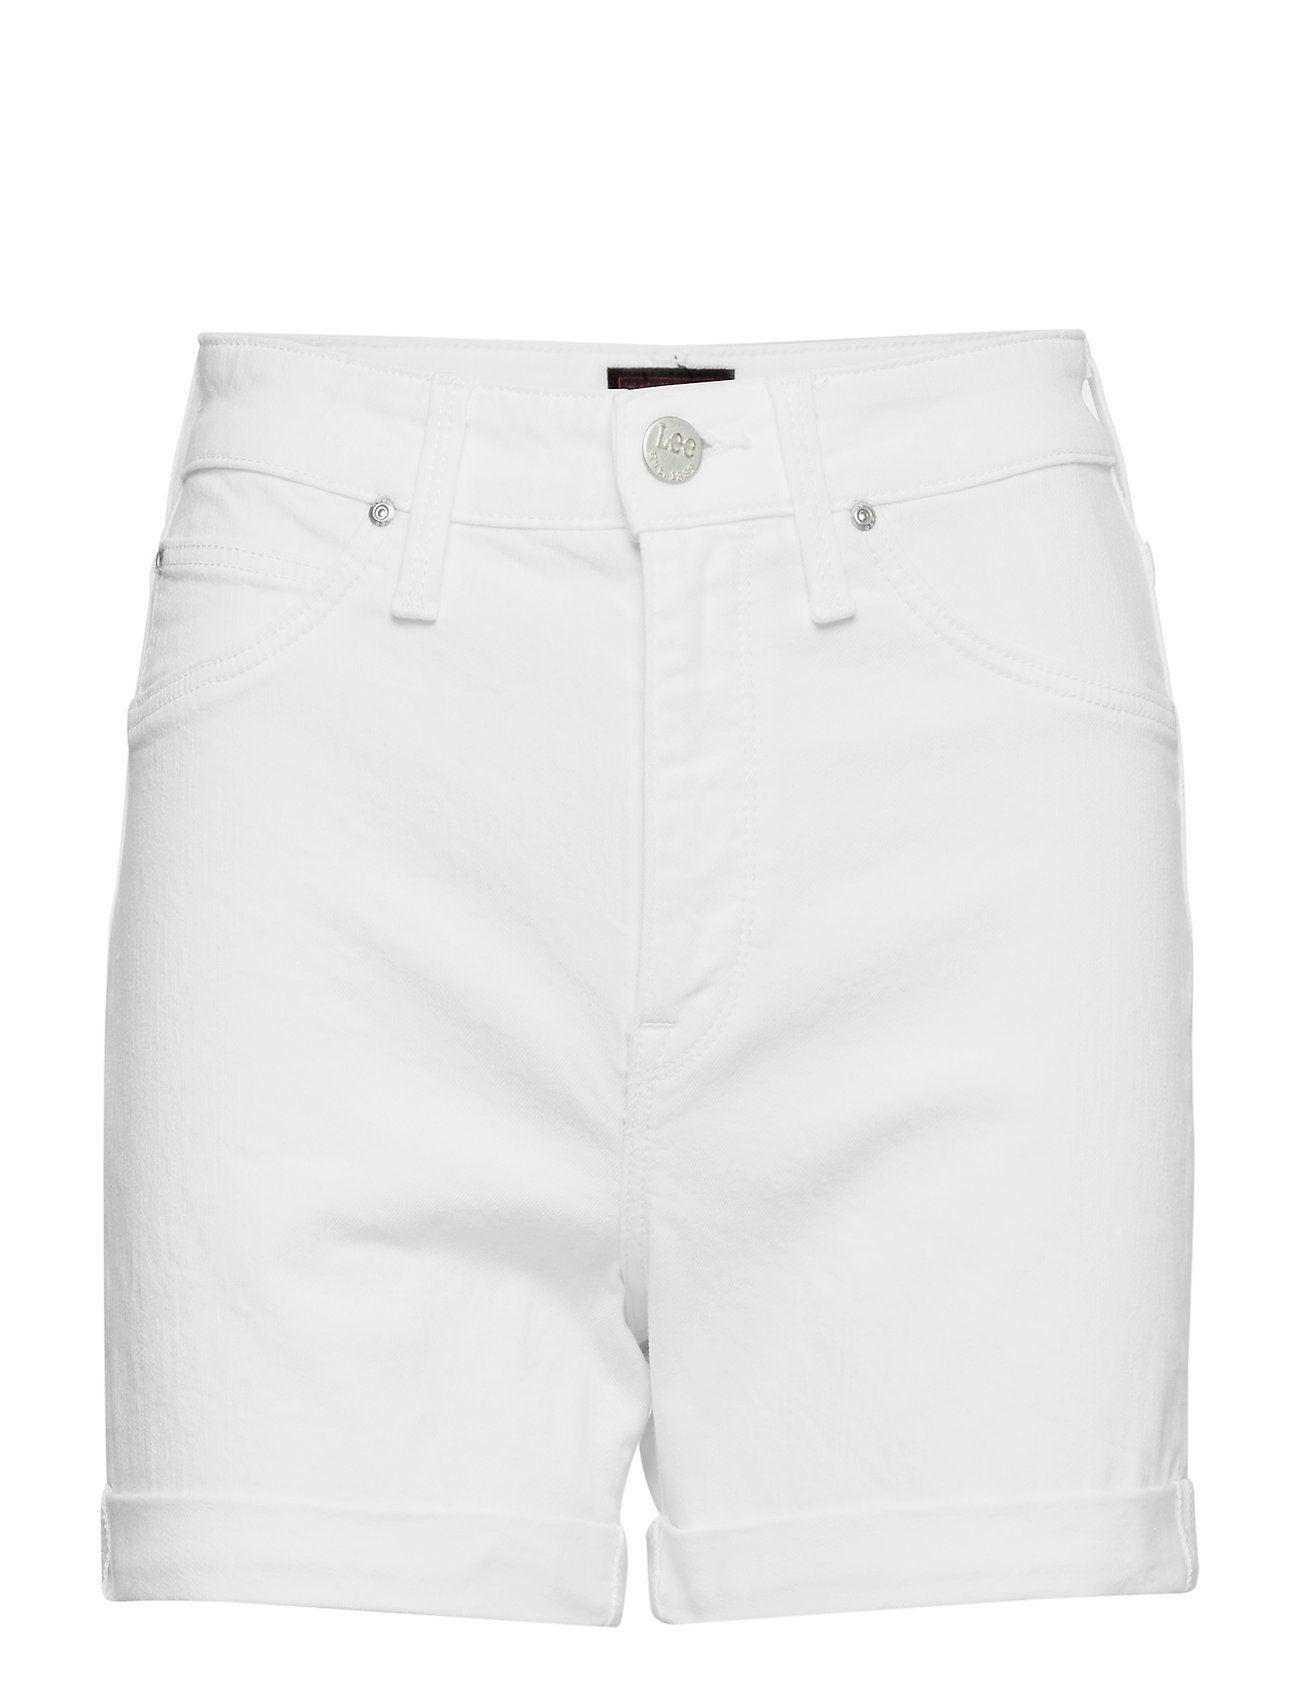 Lee Jeans MOM SHORT - OFF WHITE